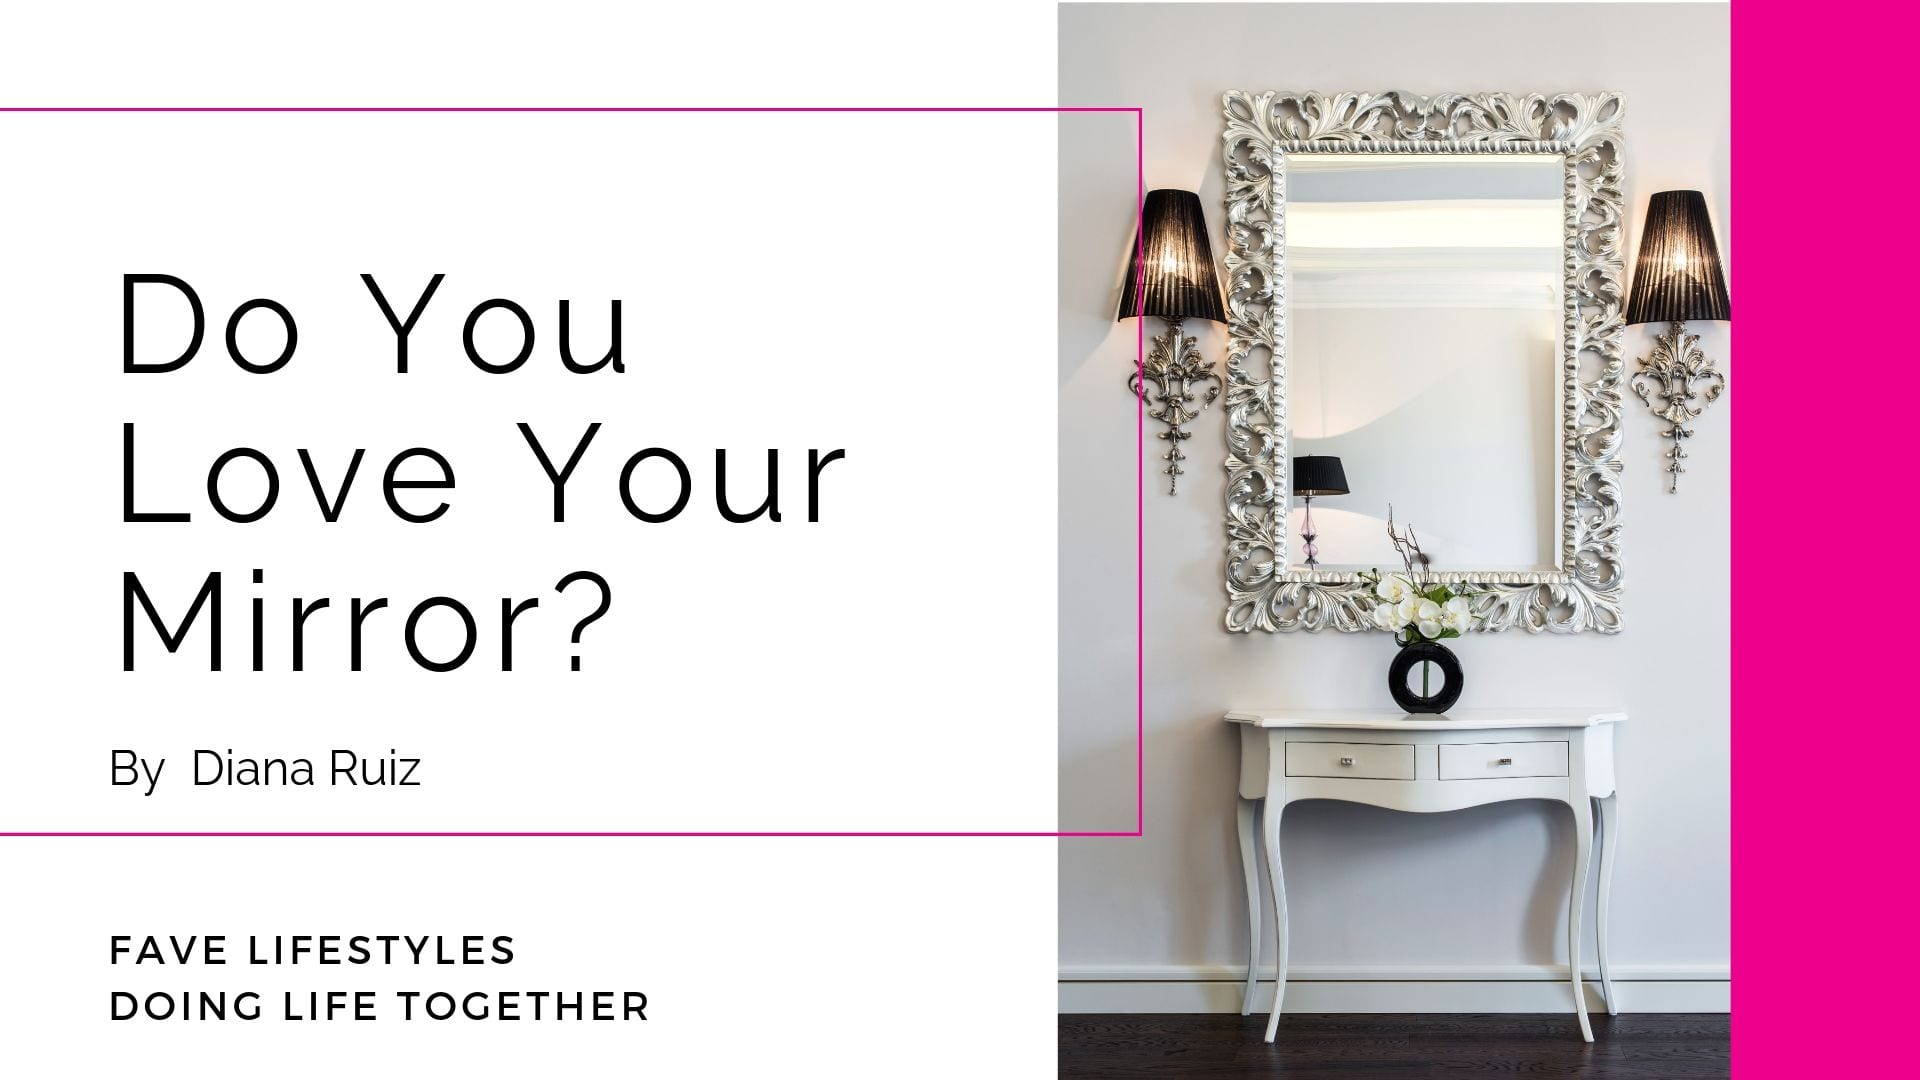 Do You Love Your Mirror?